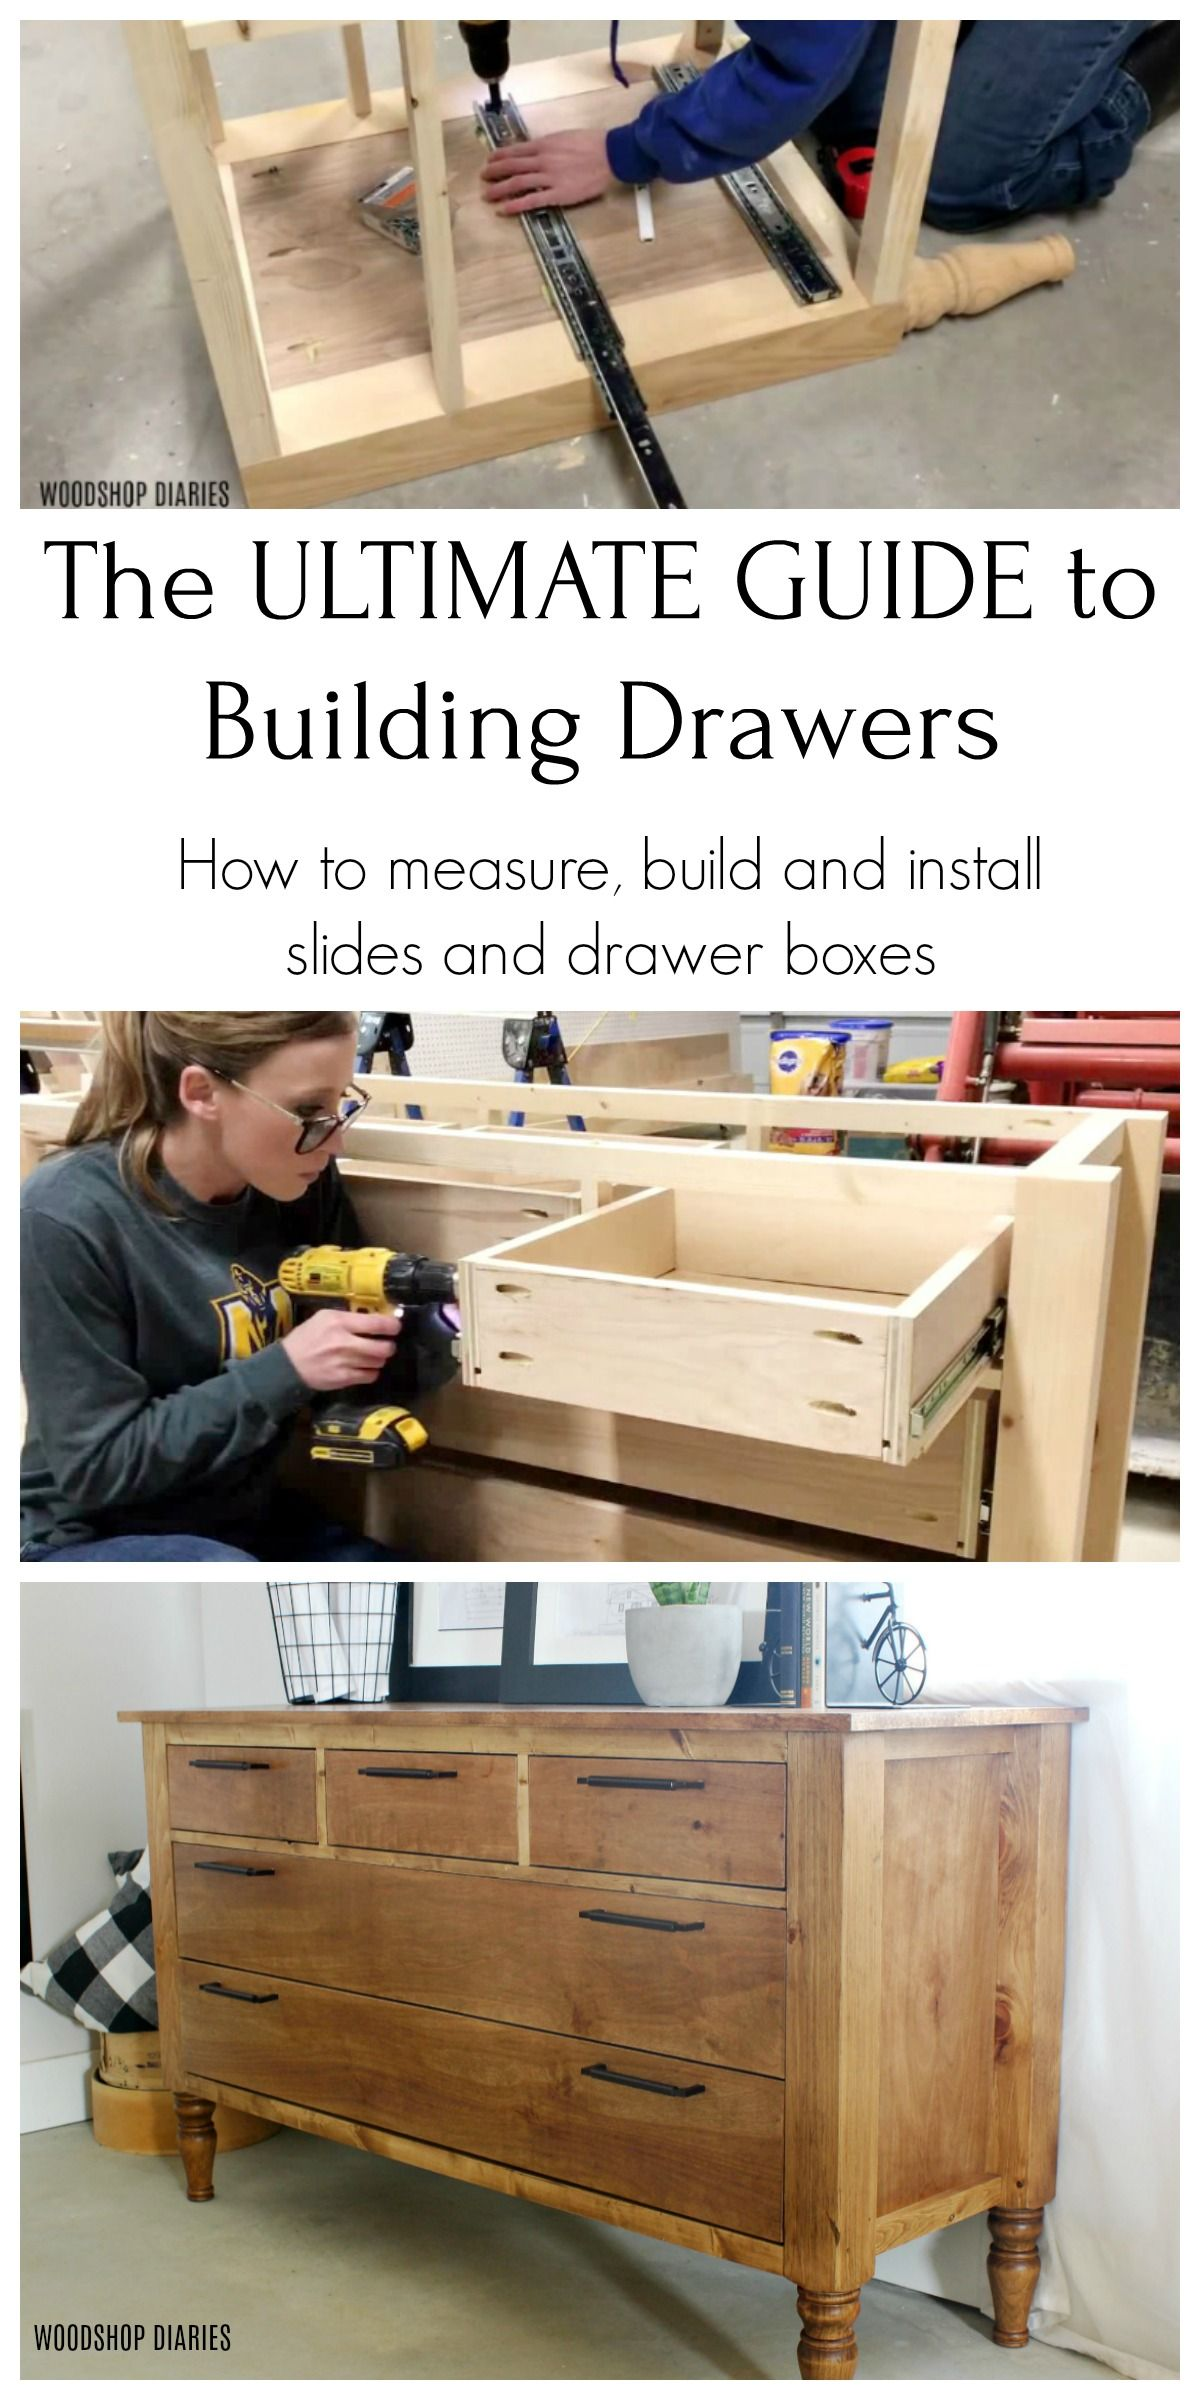 How To Build Drawers A Complete Guide To Drawer Making In 2020